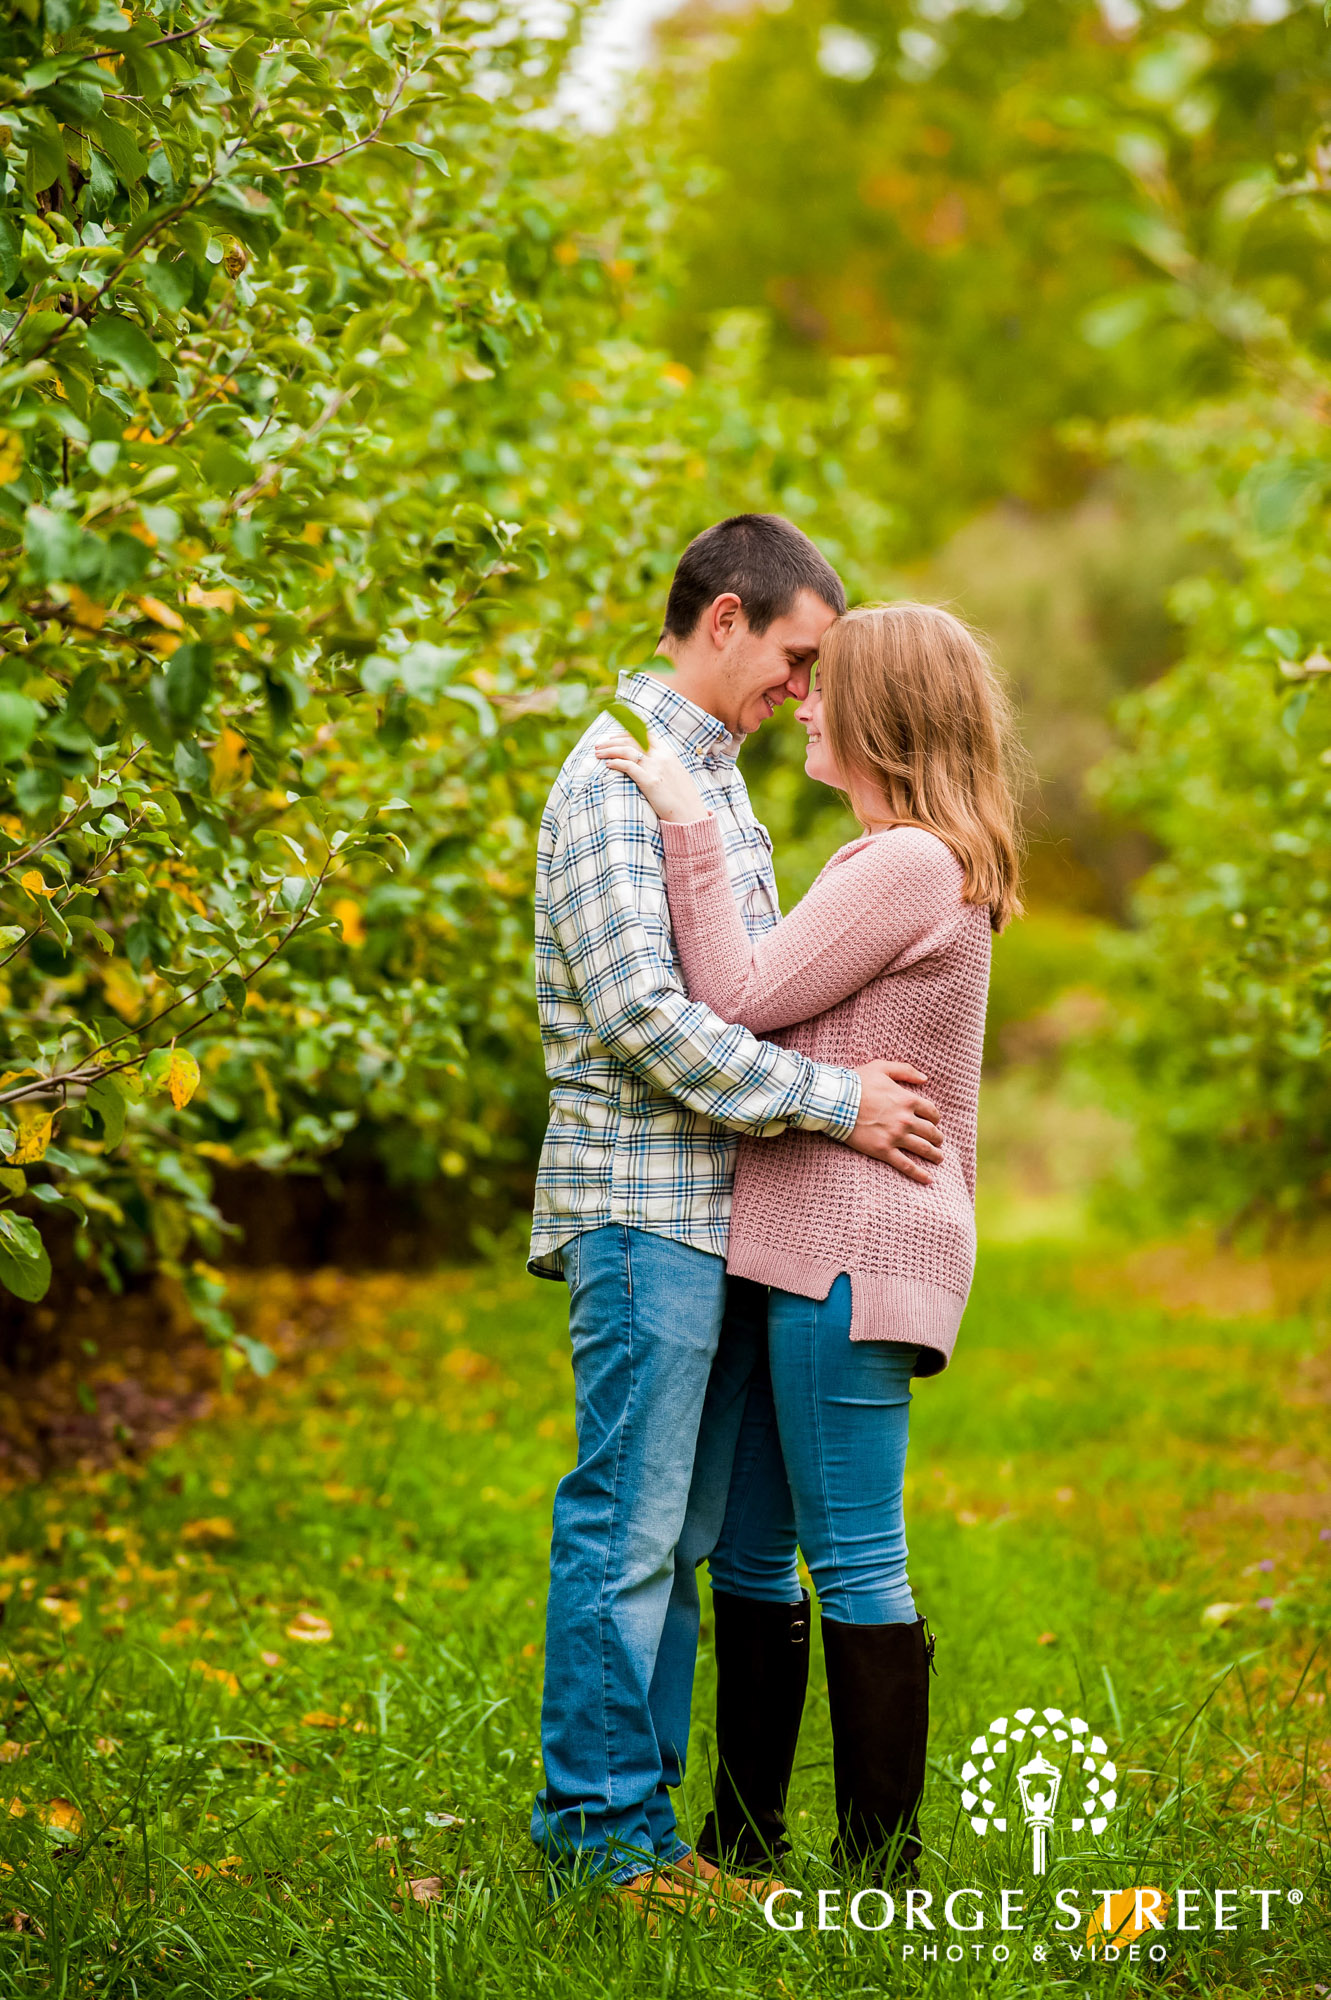 lyman orchards cute greenery sweater hartford engagement photography 8